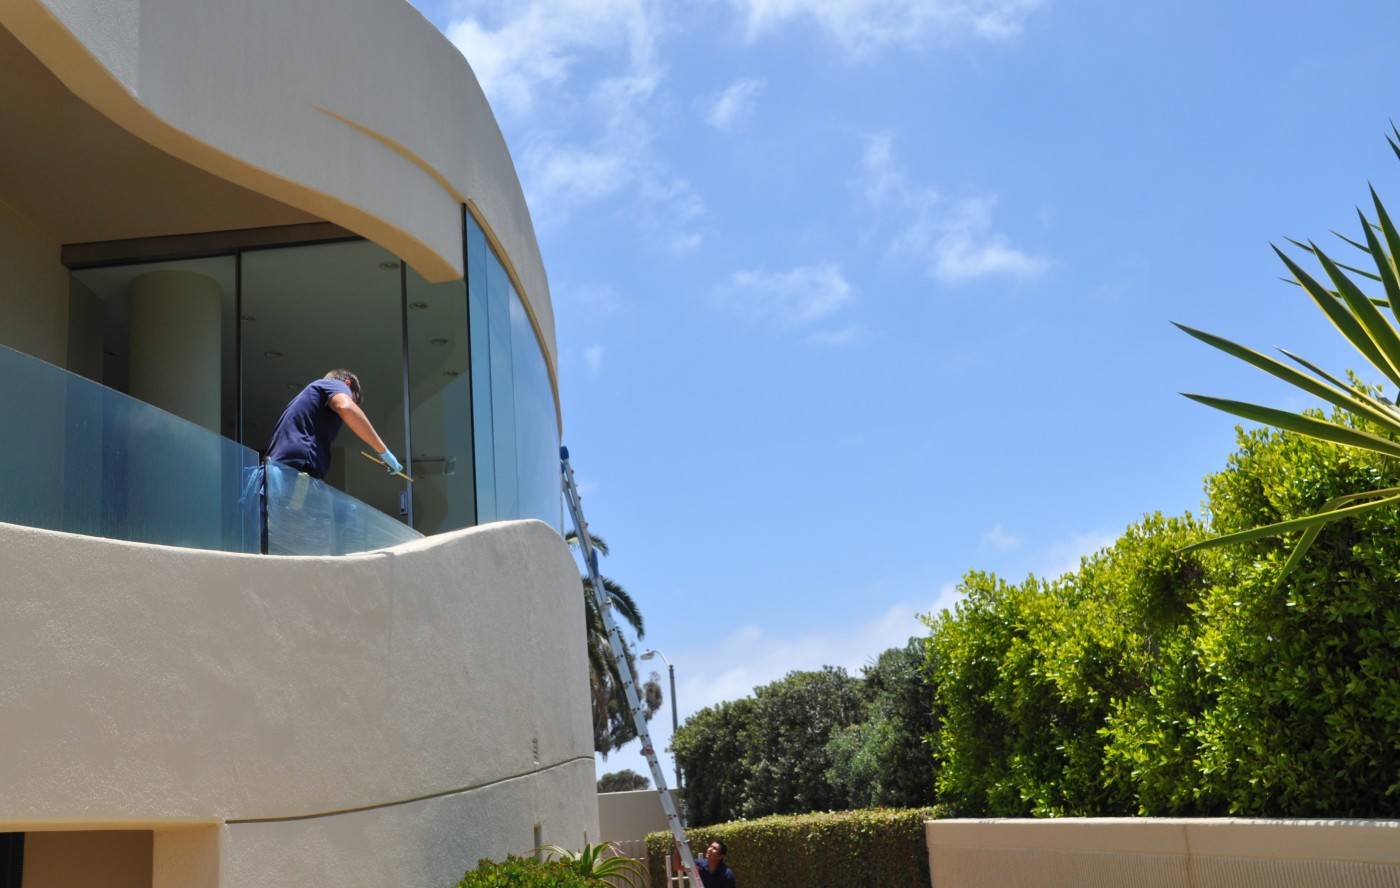 Rancho santa fe window washing clear view window for Window washing